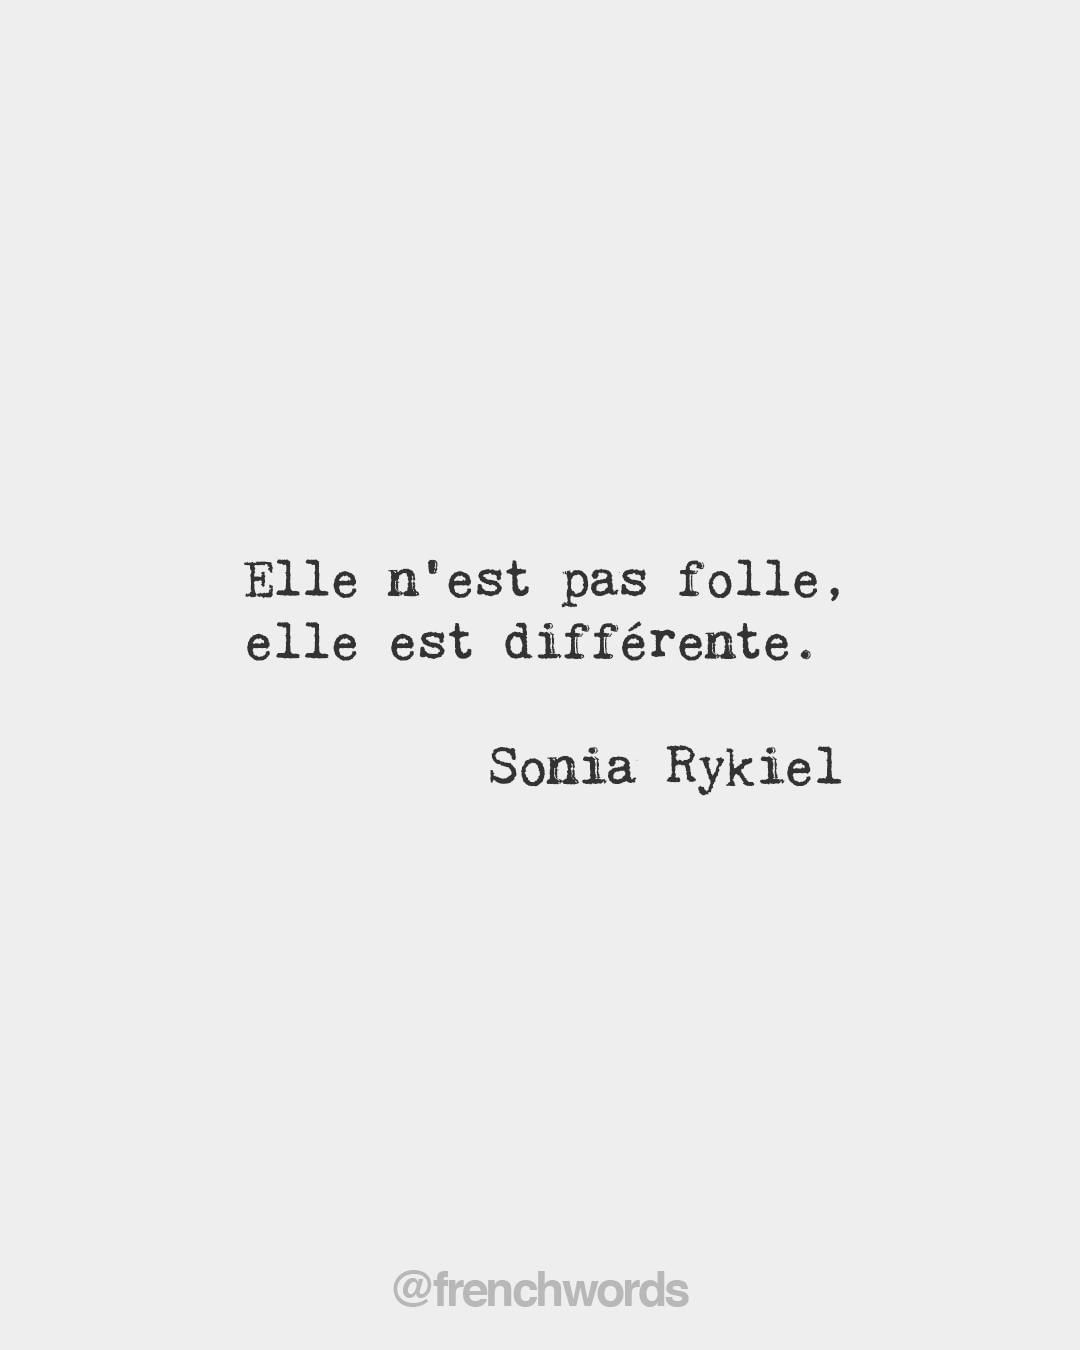 French Words On Instagram She S Not Crazy She S Different Sonia Rykiel French Fashion Designer 1930 2016